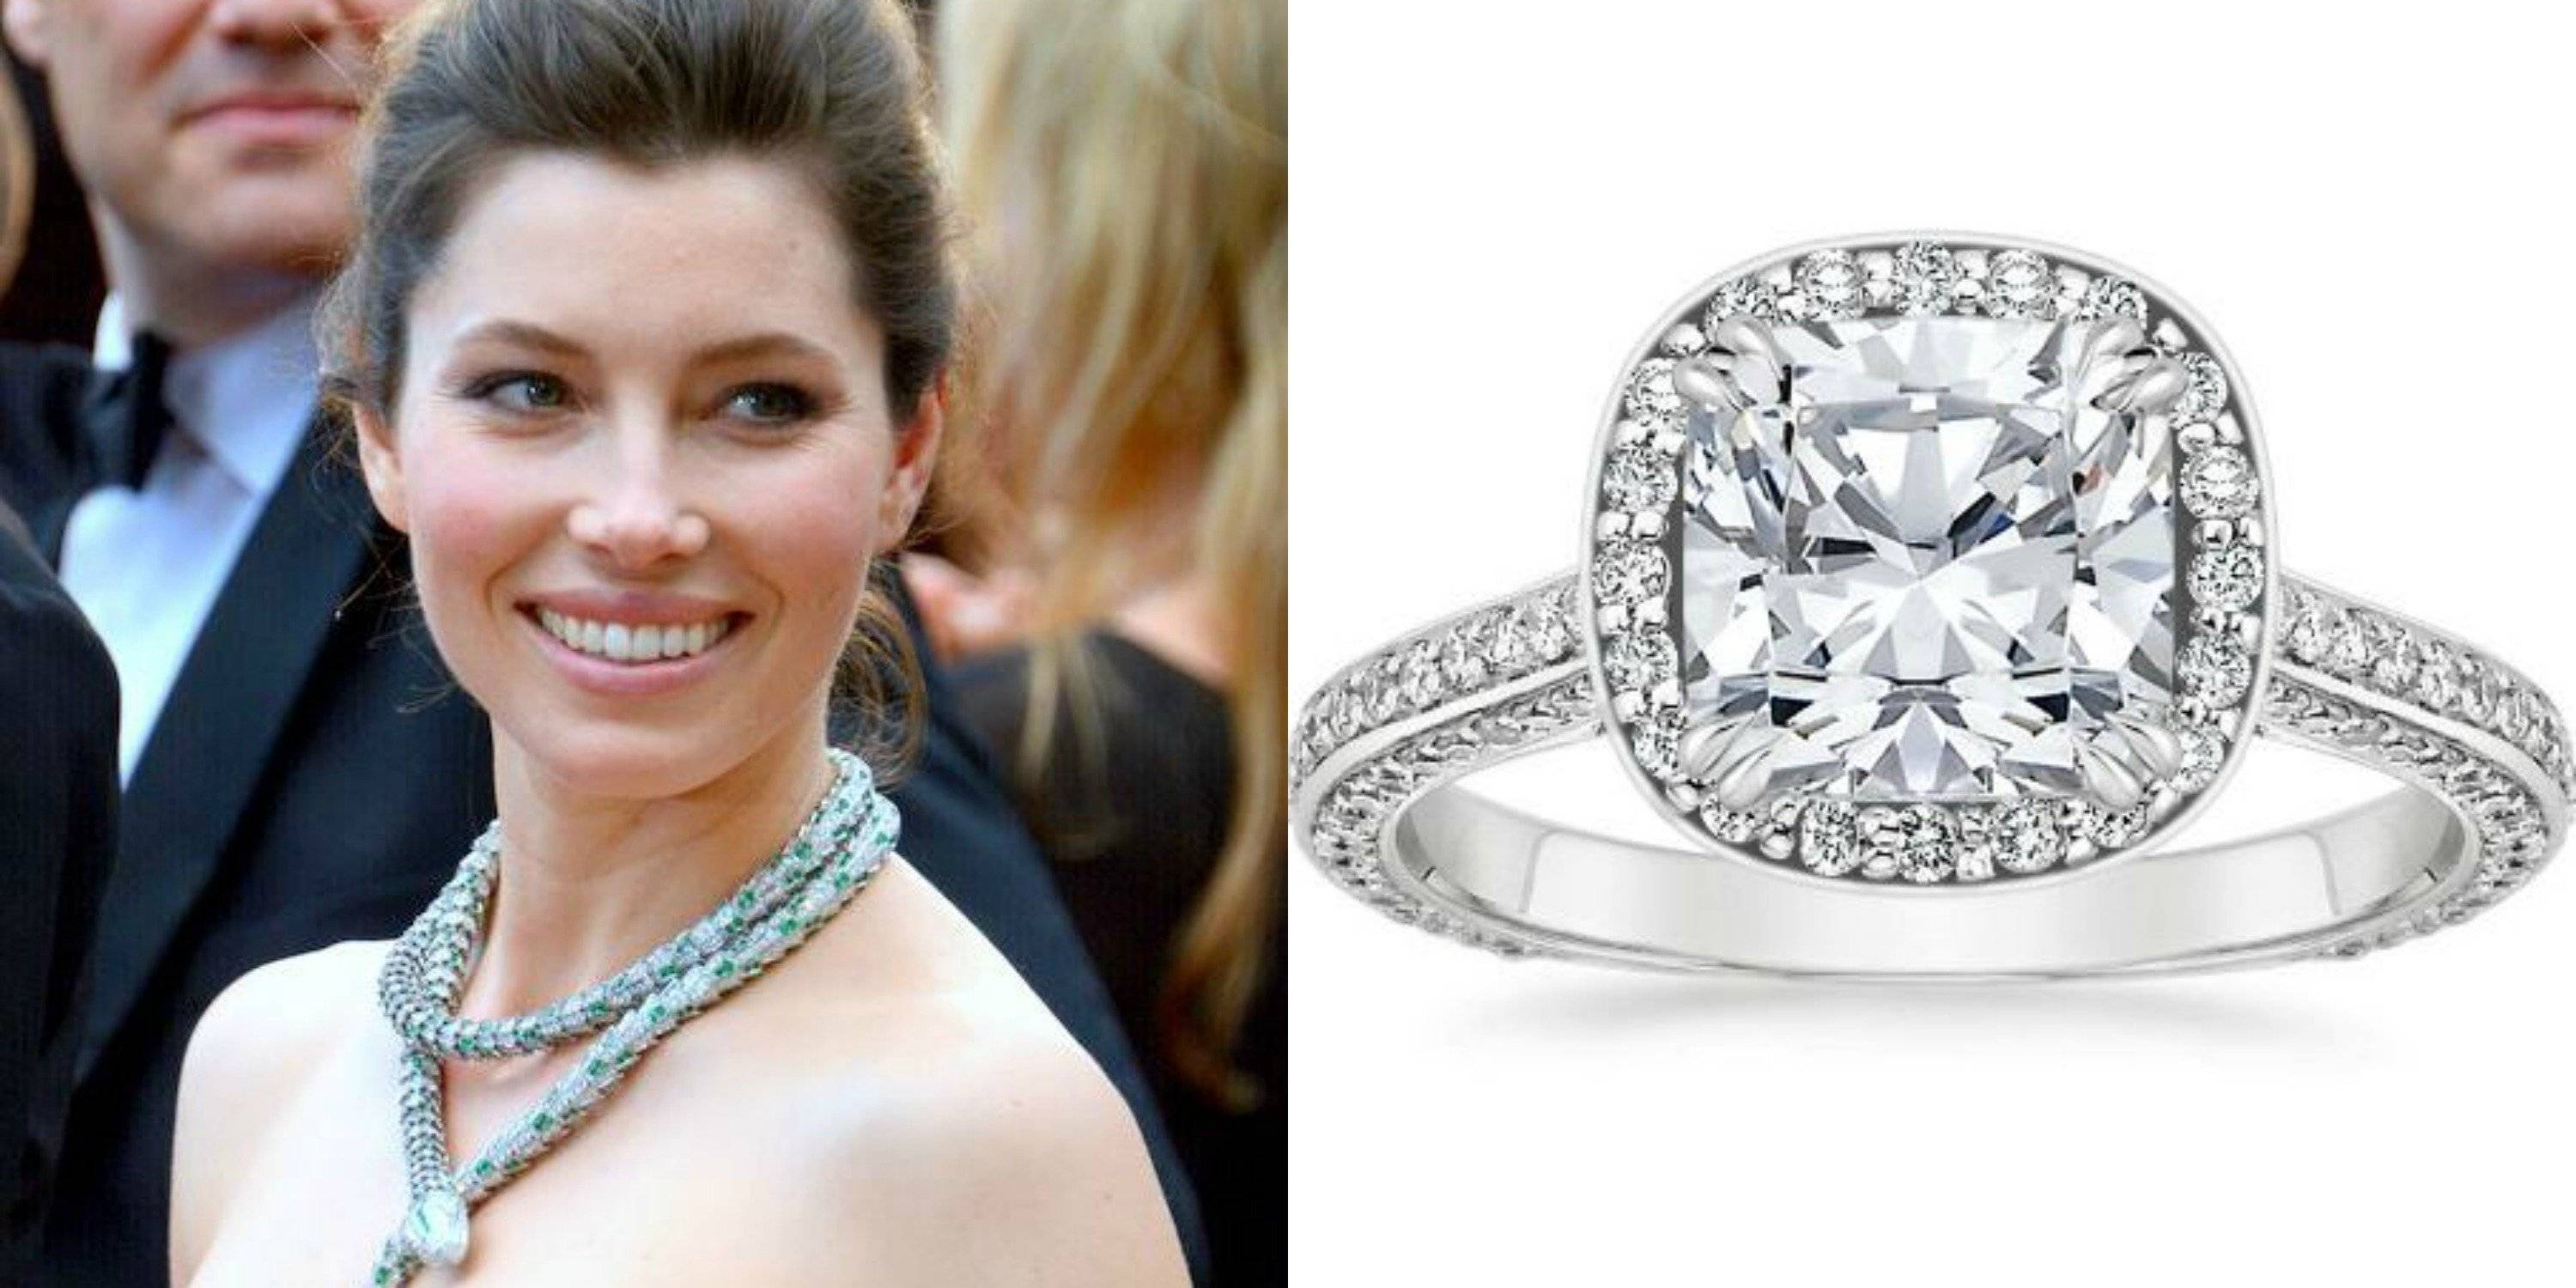 celebrity rings of pertaining kate good biggest photo x ring to catherine most famous wedding current engagement middleton